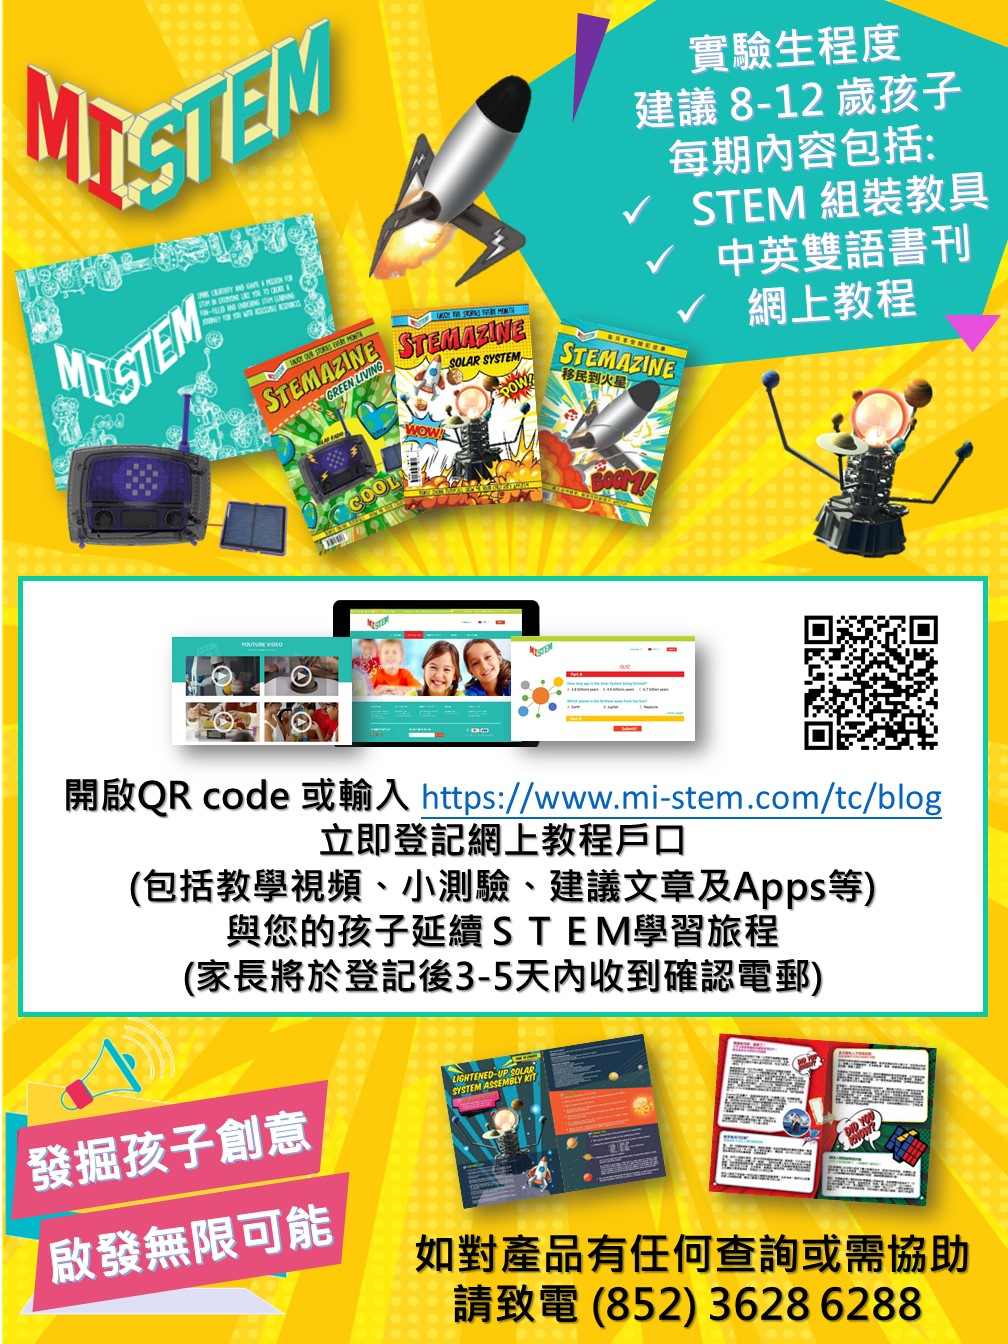 MI STEM - Registration of online resources platform (Dr. Max 客戶專用) Image